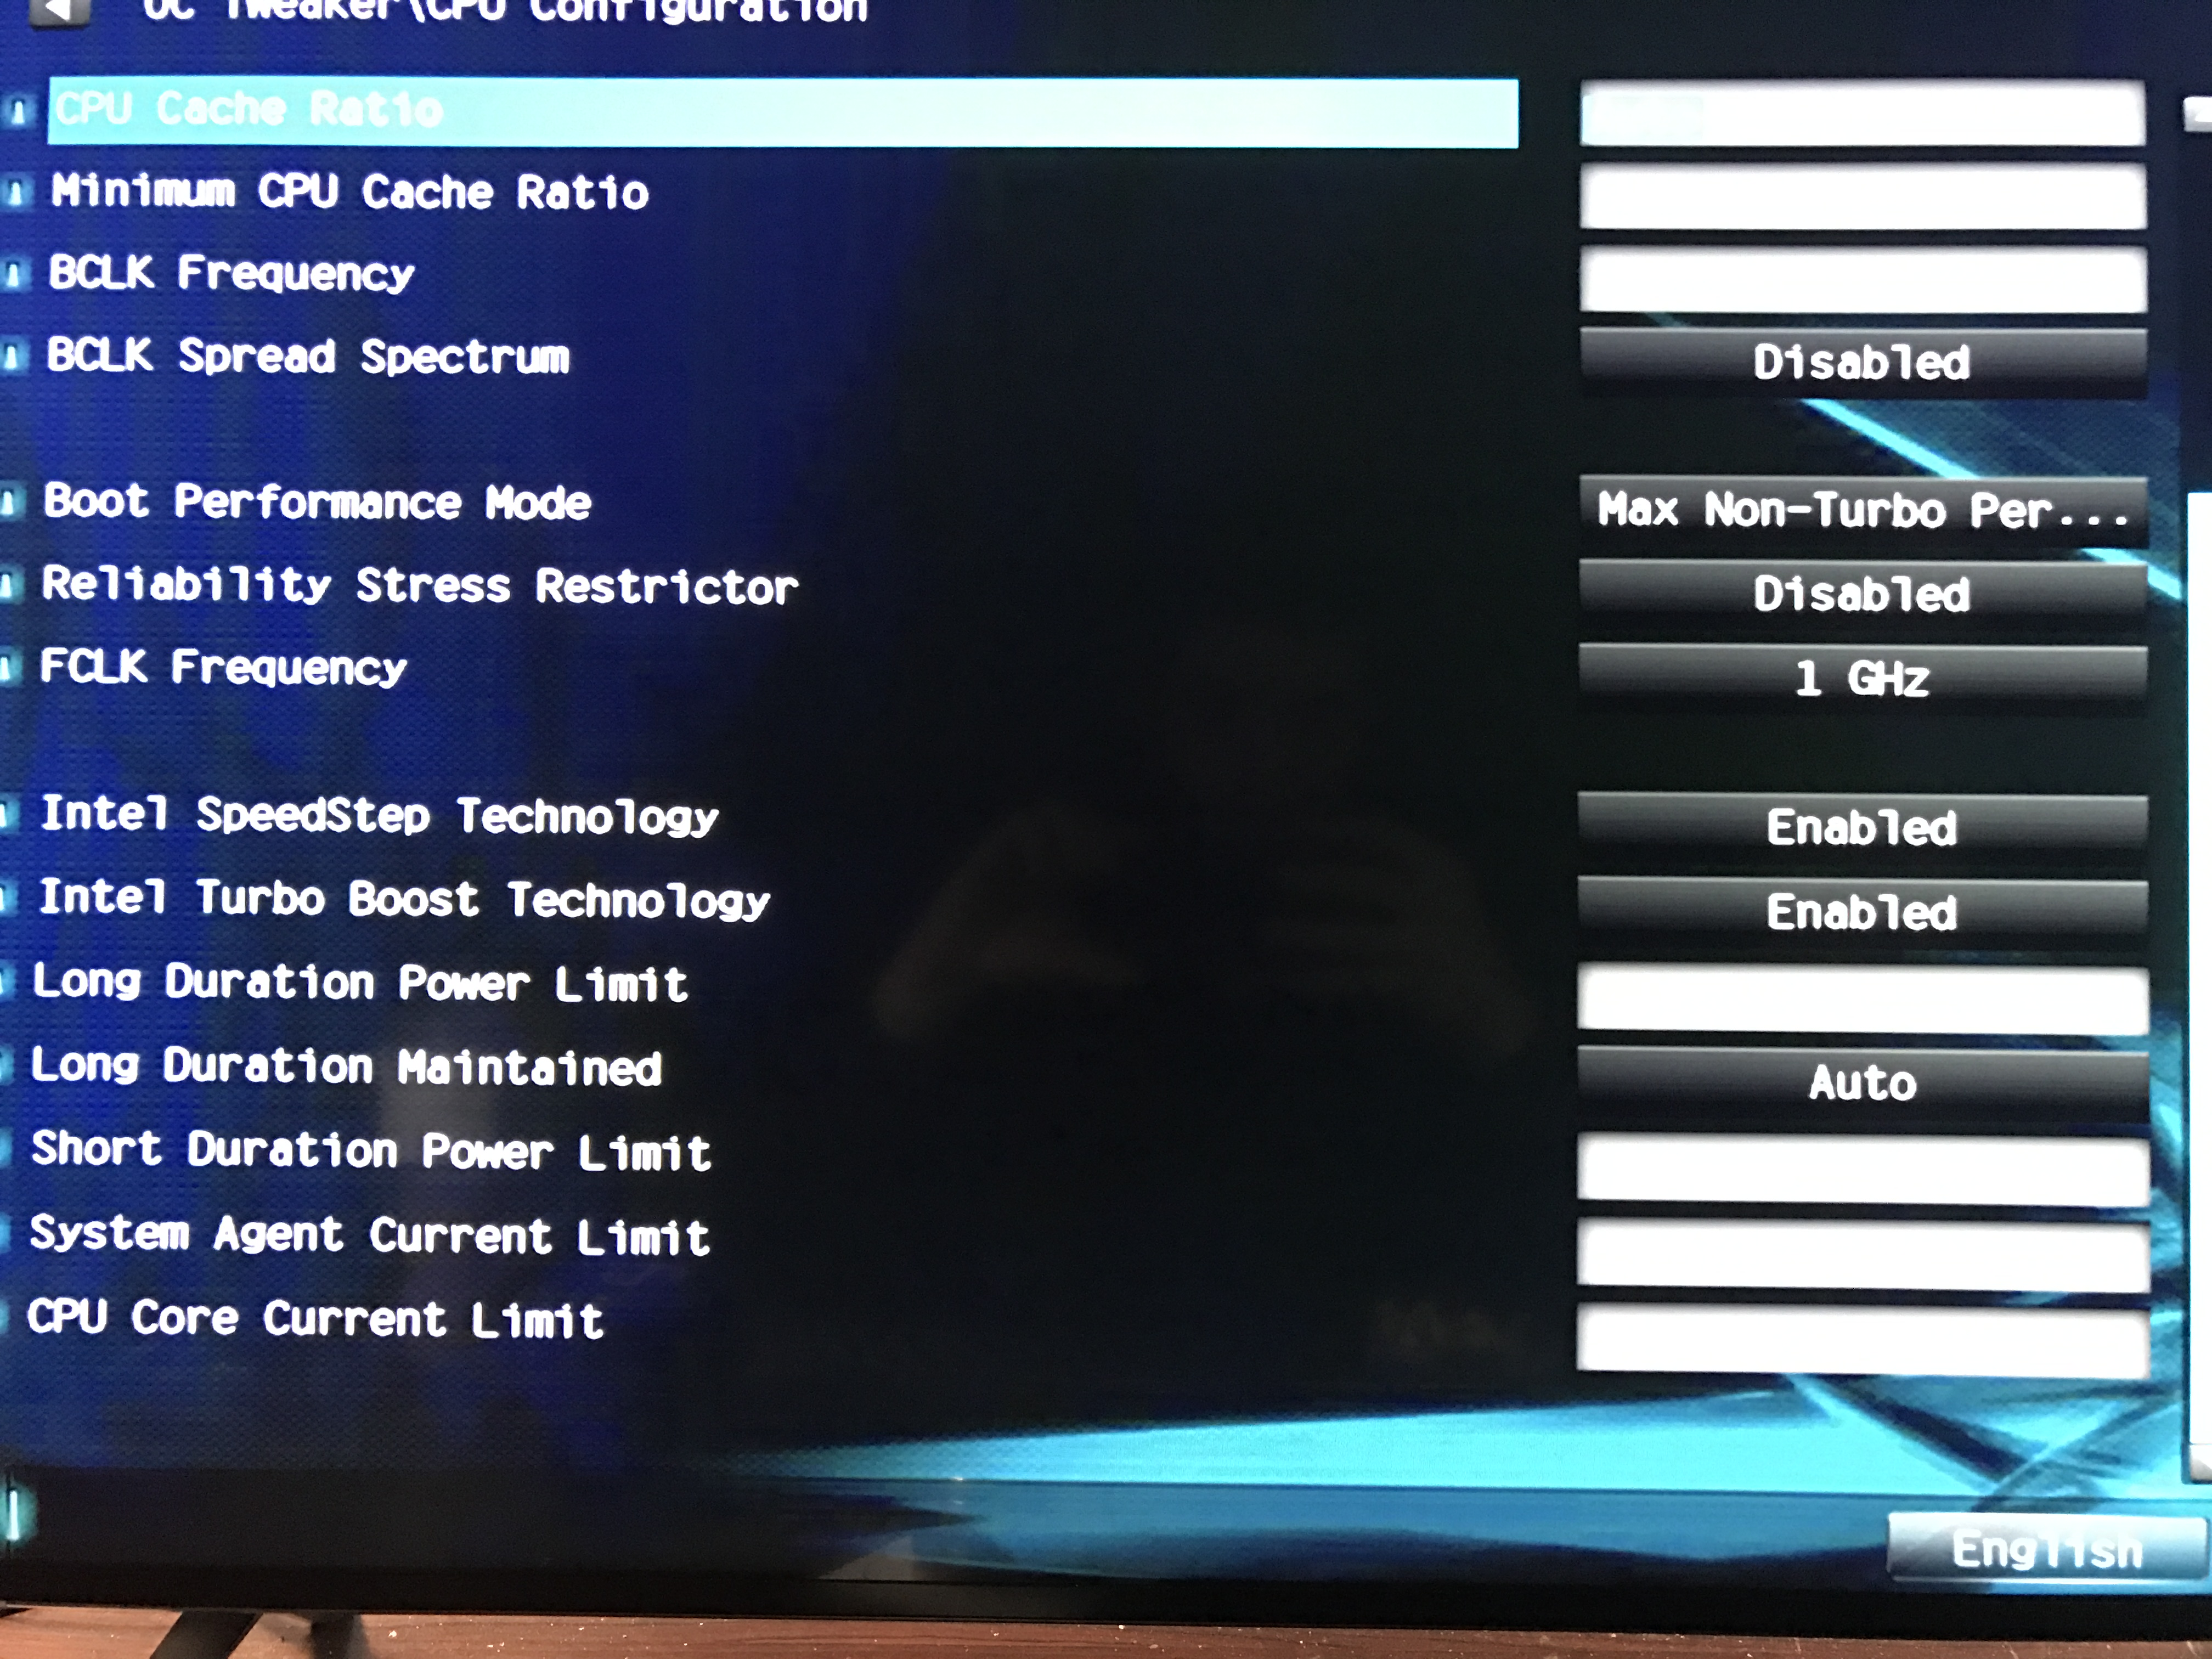 Overclock Settings for an i7 6700k with 3200MHz DDR4 RAM? (ASRock